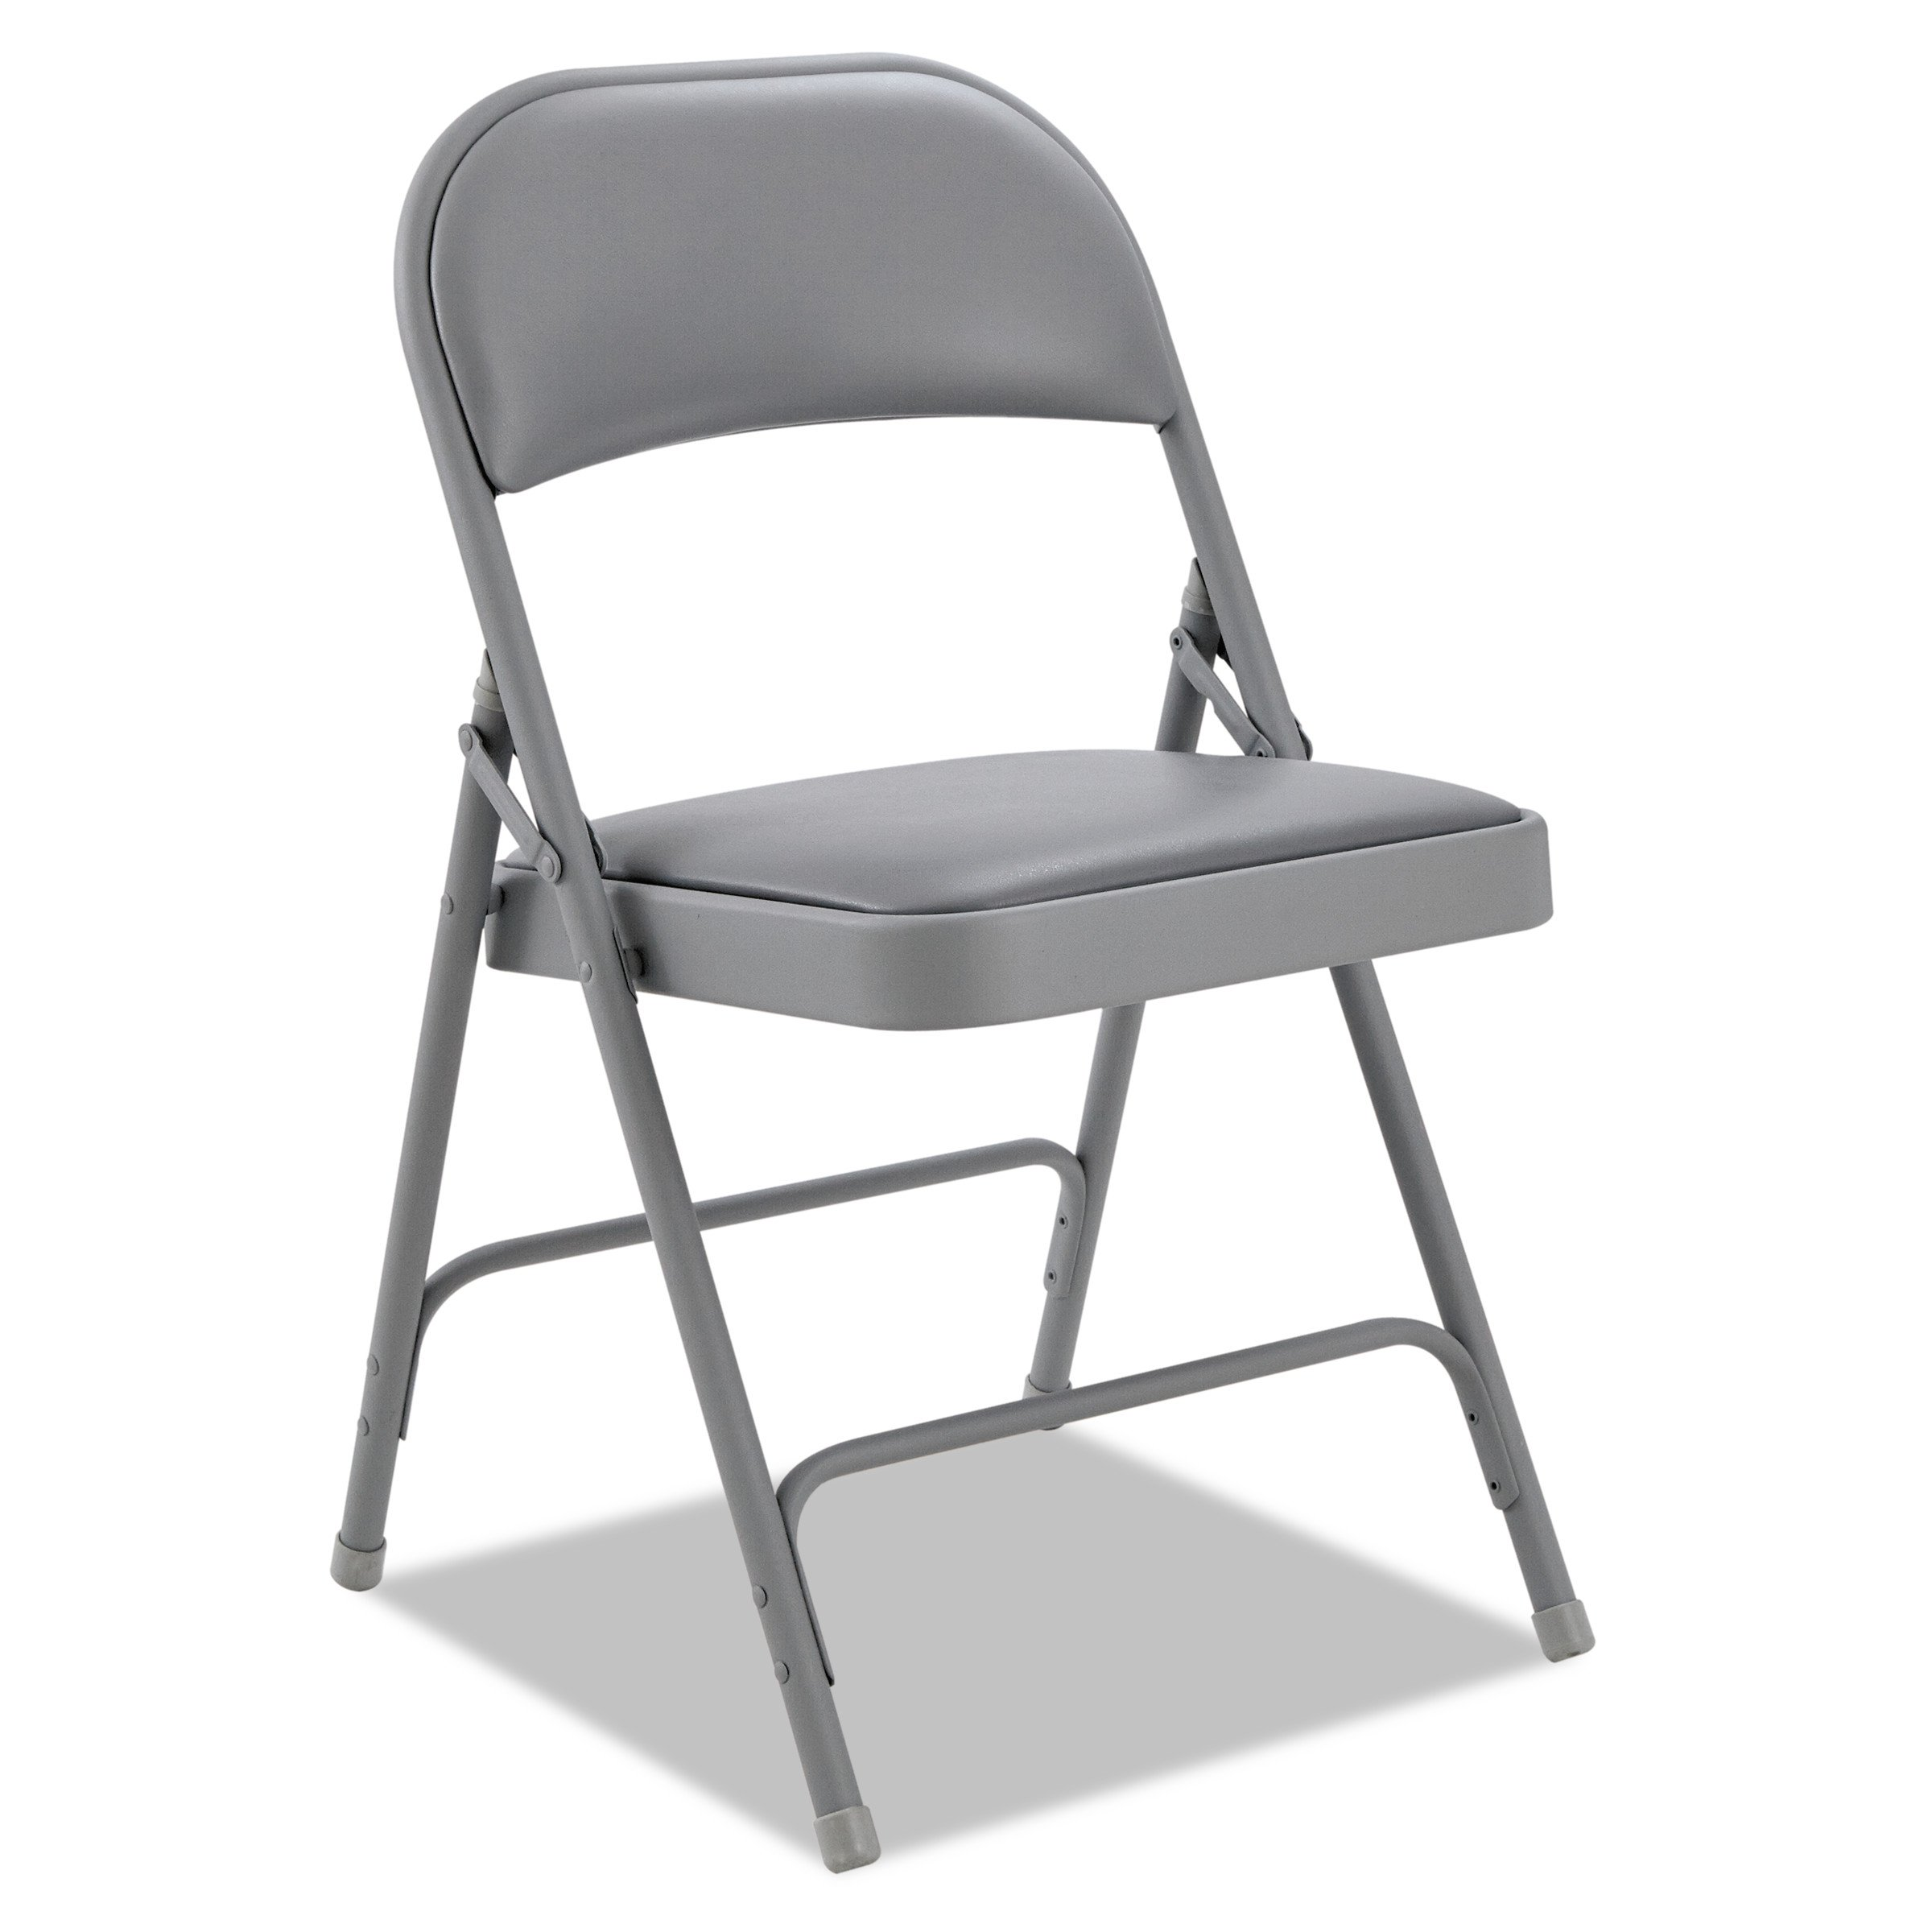 Alera FC96G Steel Folding Chair with Two-Brace Support, Padded Back/Seat, Light Gray (Case of 4)